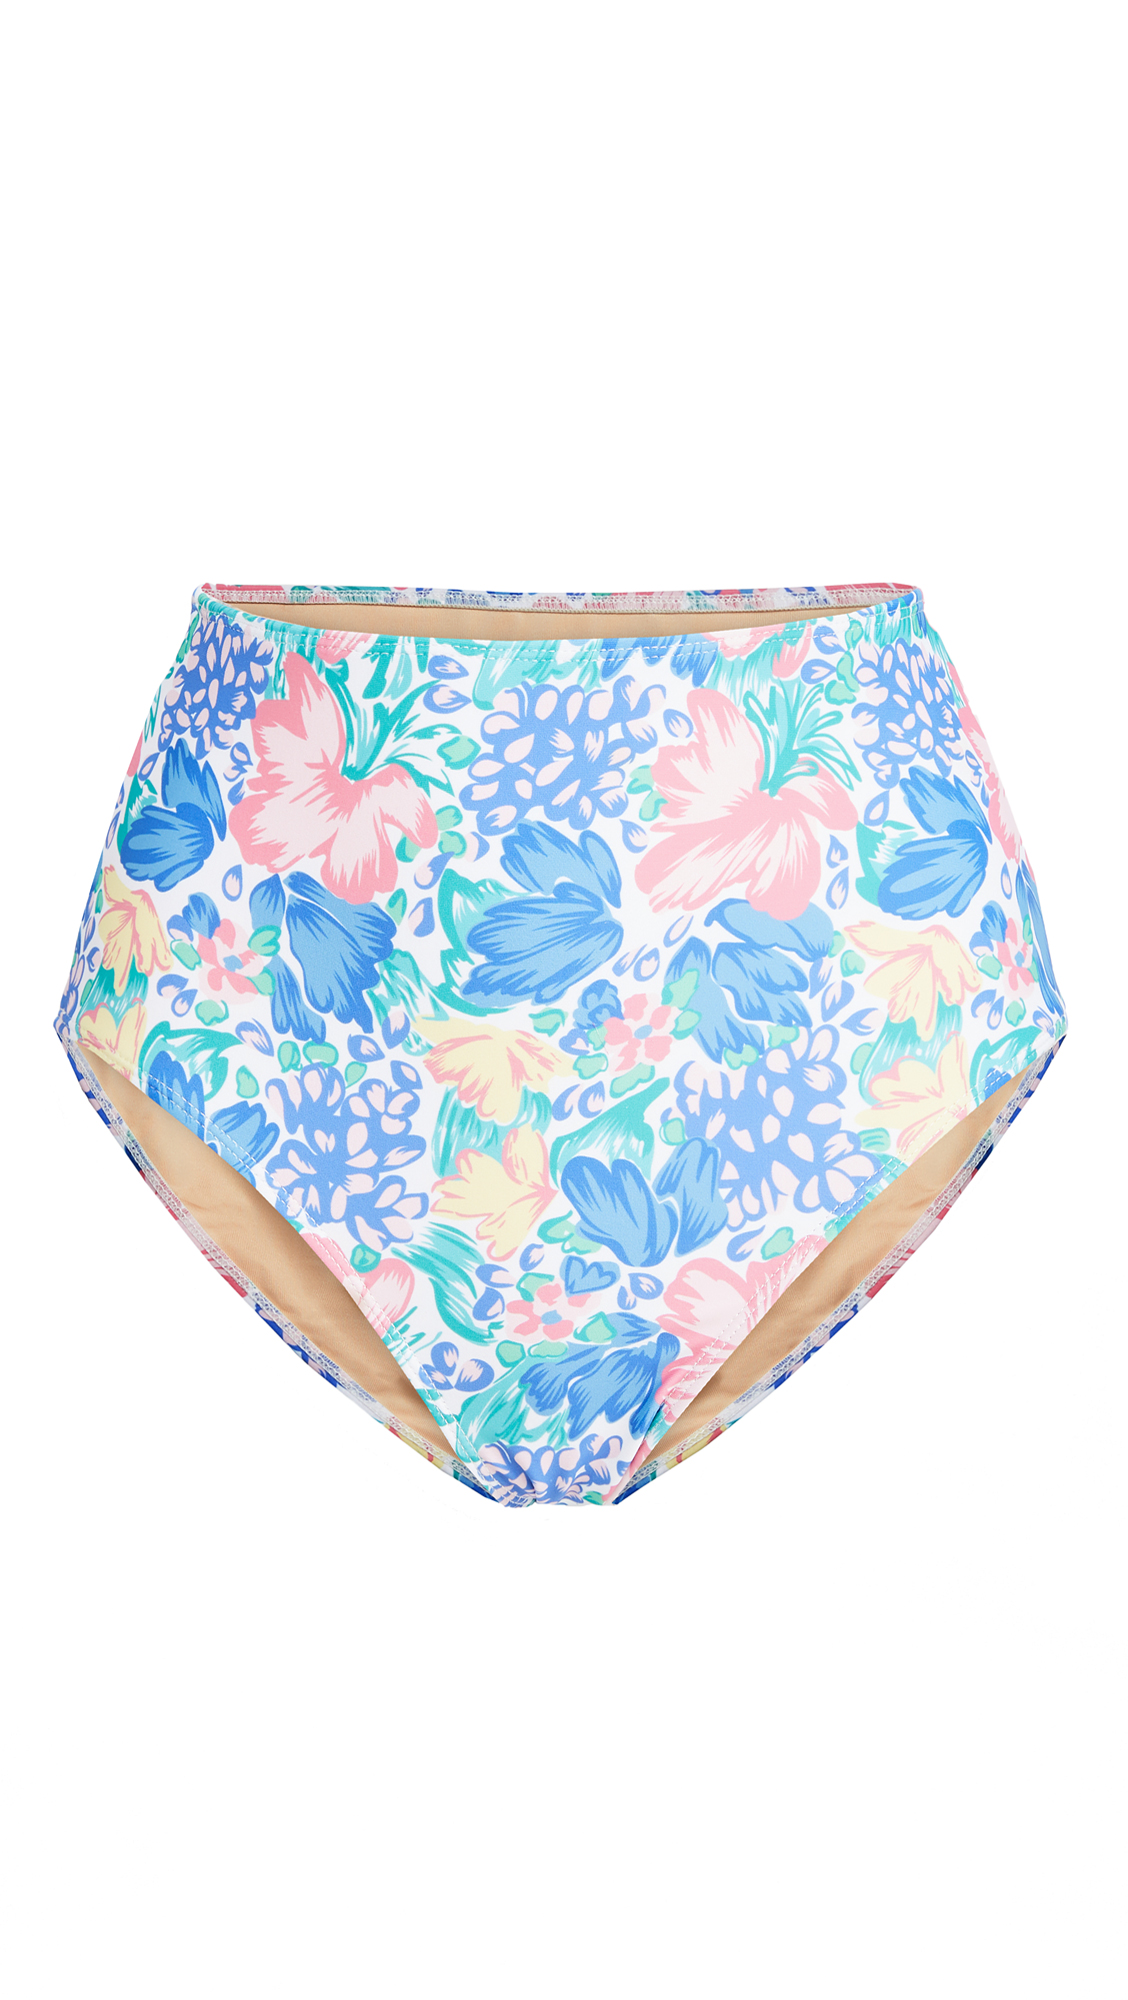 FAITHFULL THE BRAND Chaumont Bikini Bottoms